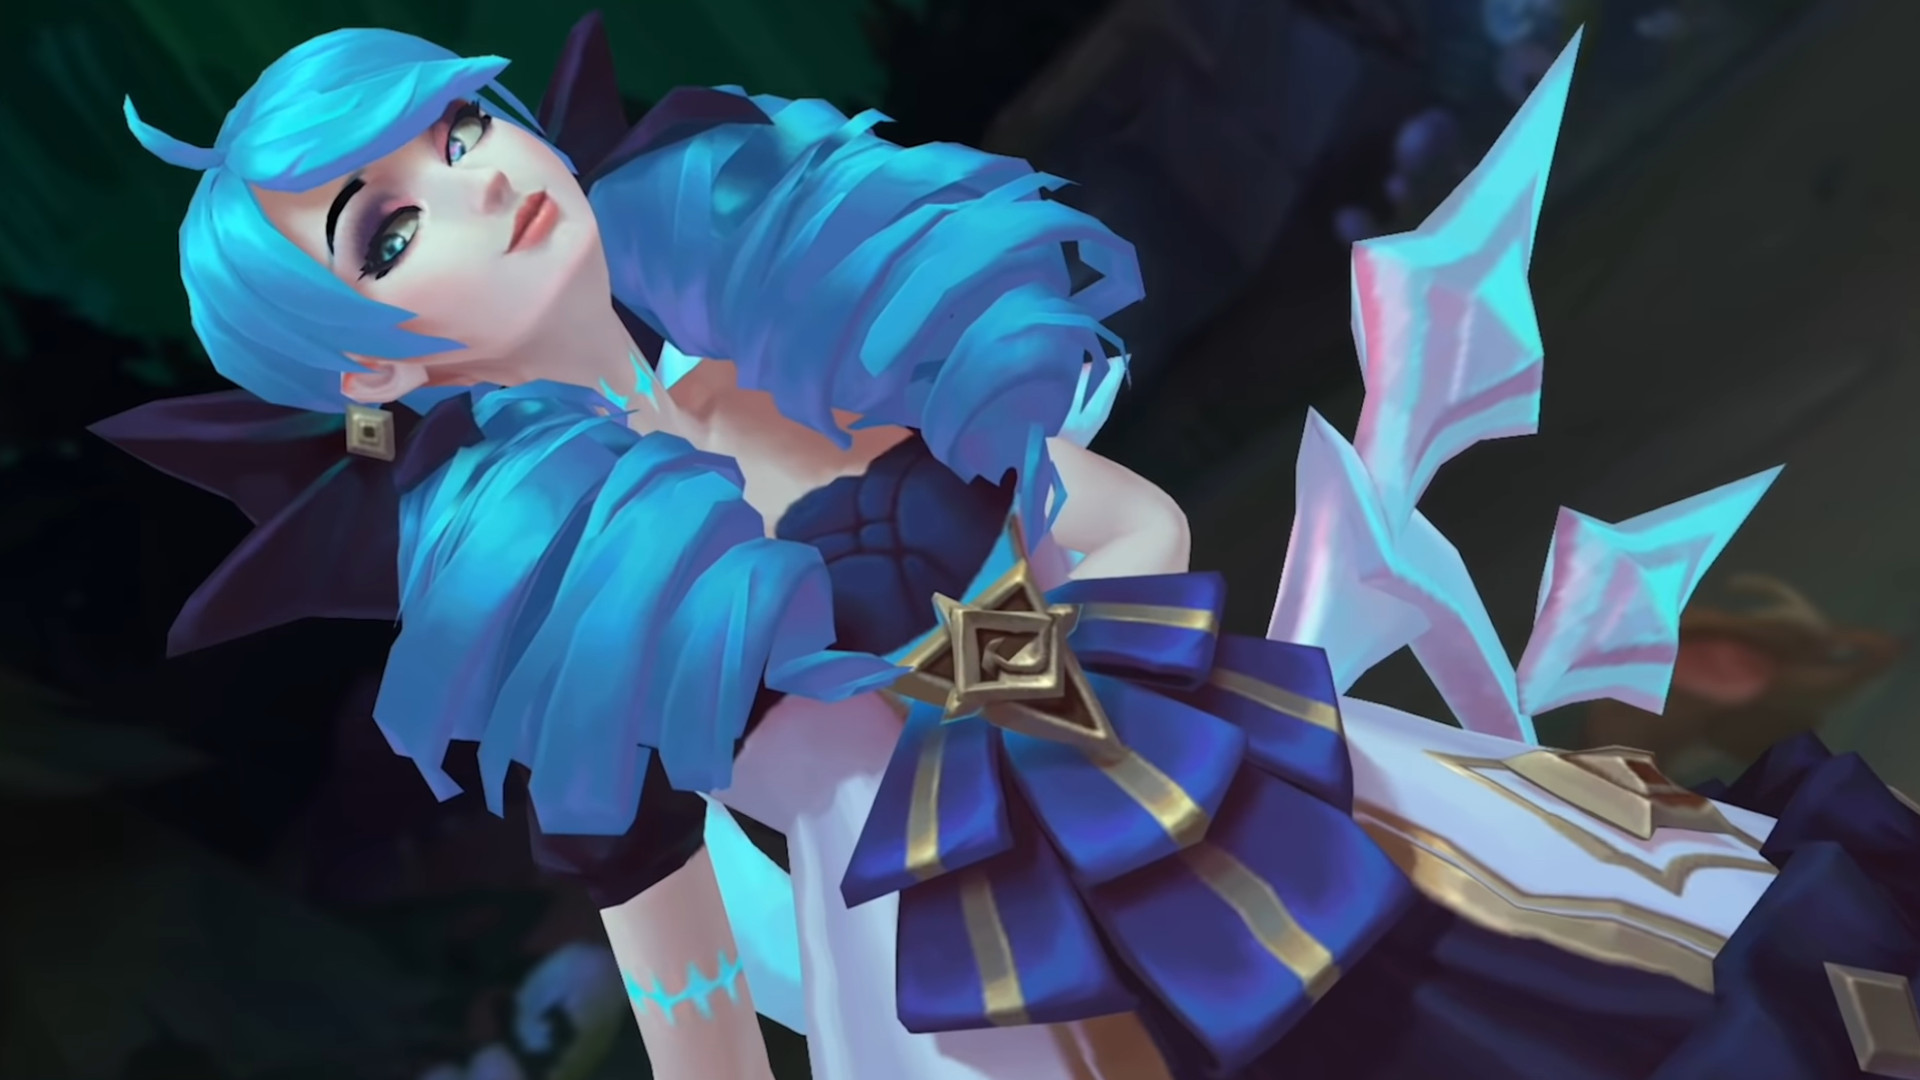 League Of Legends Gwen Png - League of Legends' new champion is Gwen, and she's a creepy living ...